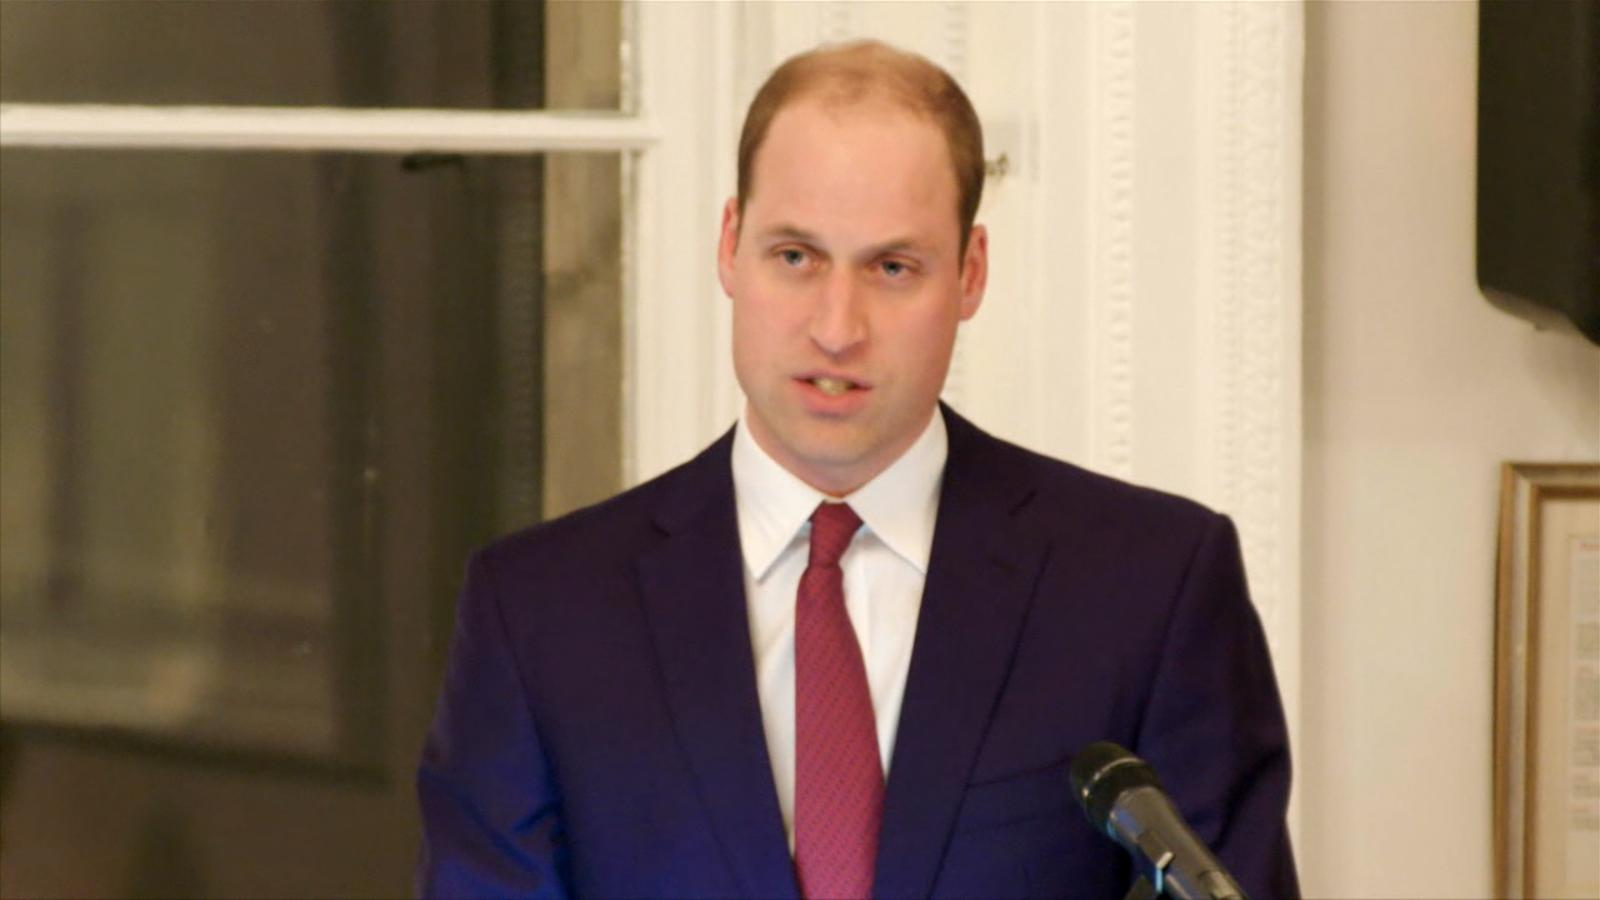 an analysis of the topic of the prince william A collection of over 50,000 educational videos on a wide variety of topics   center provides access to biographies, bibliographies and critical analysis of.